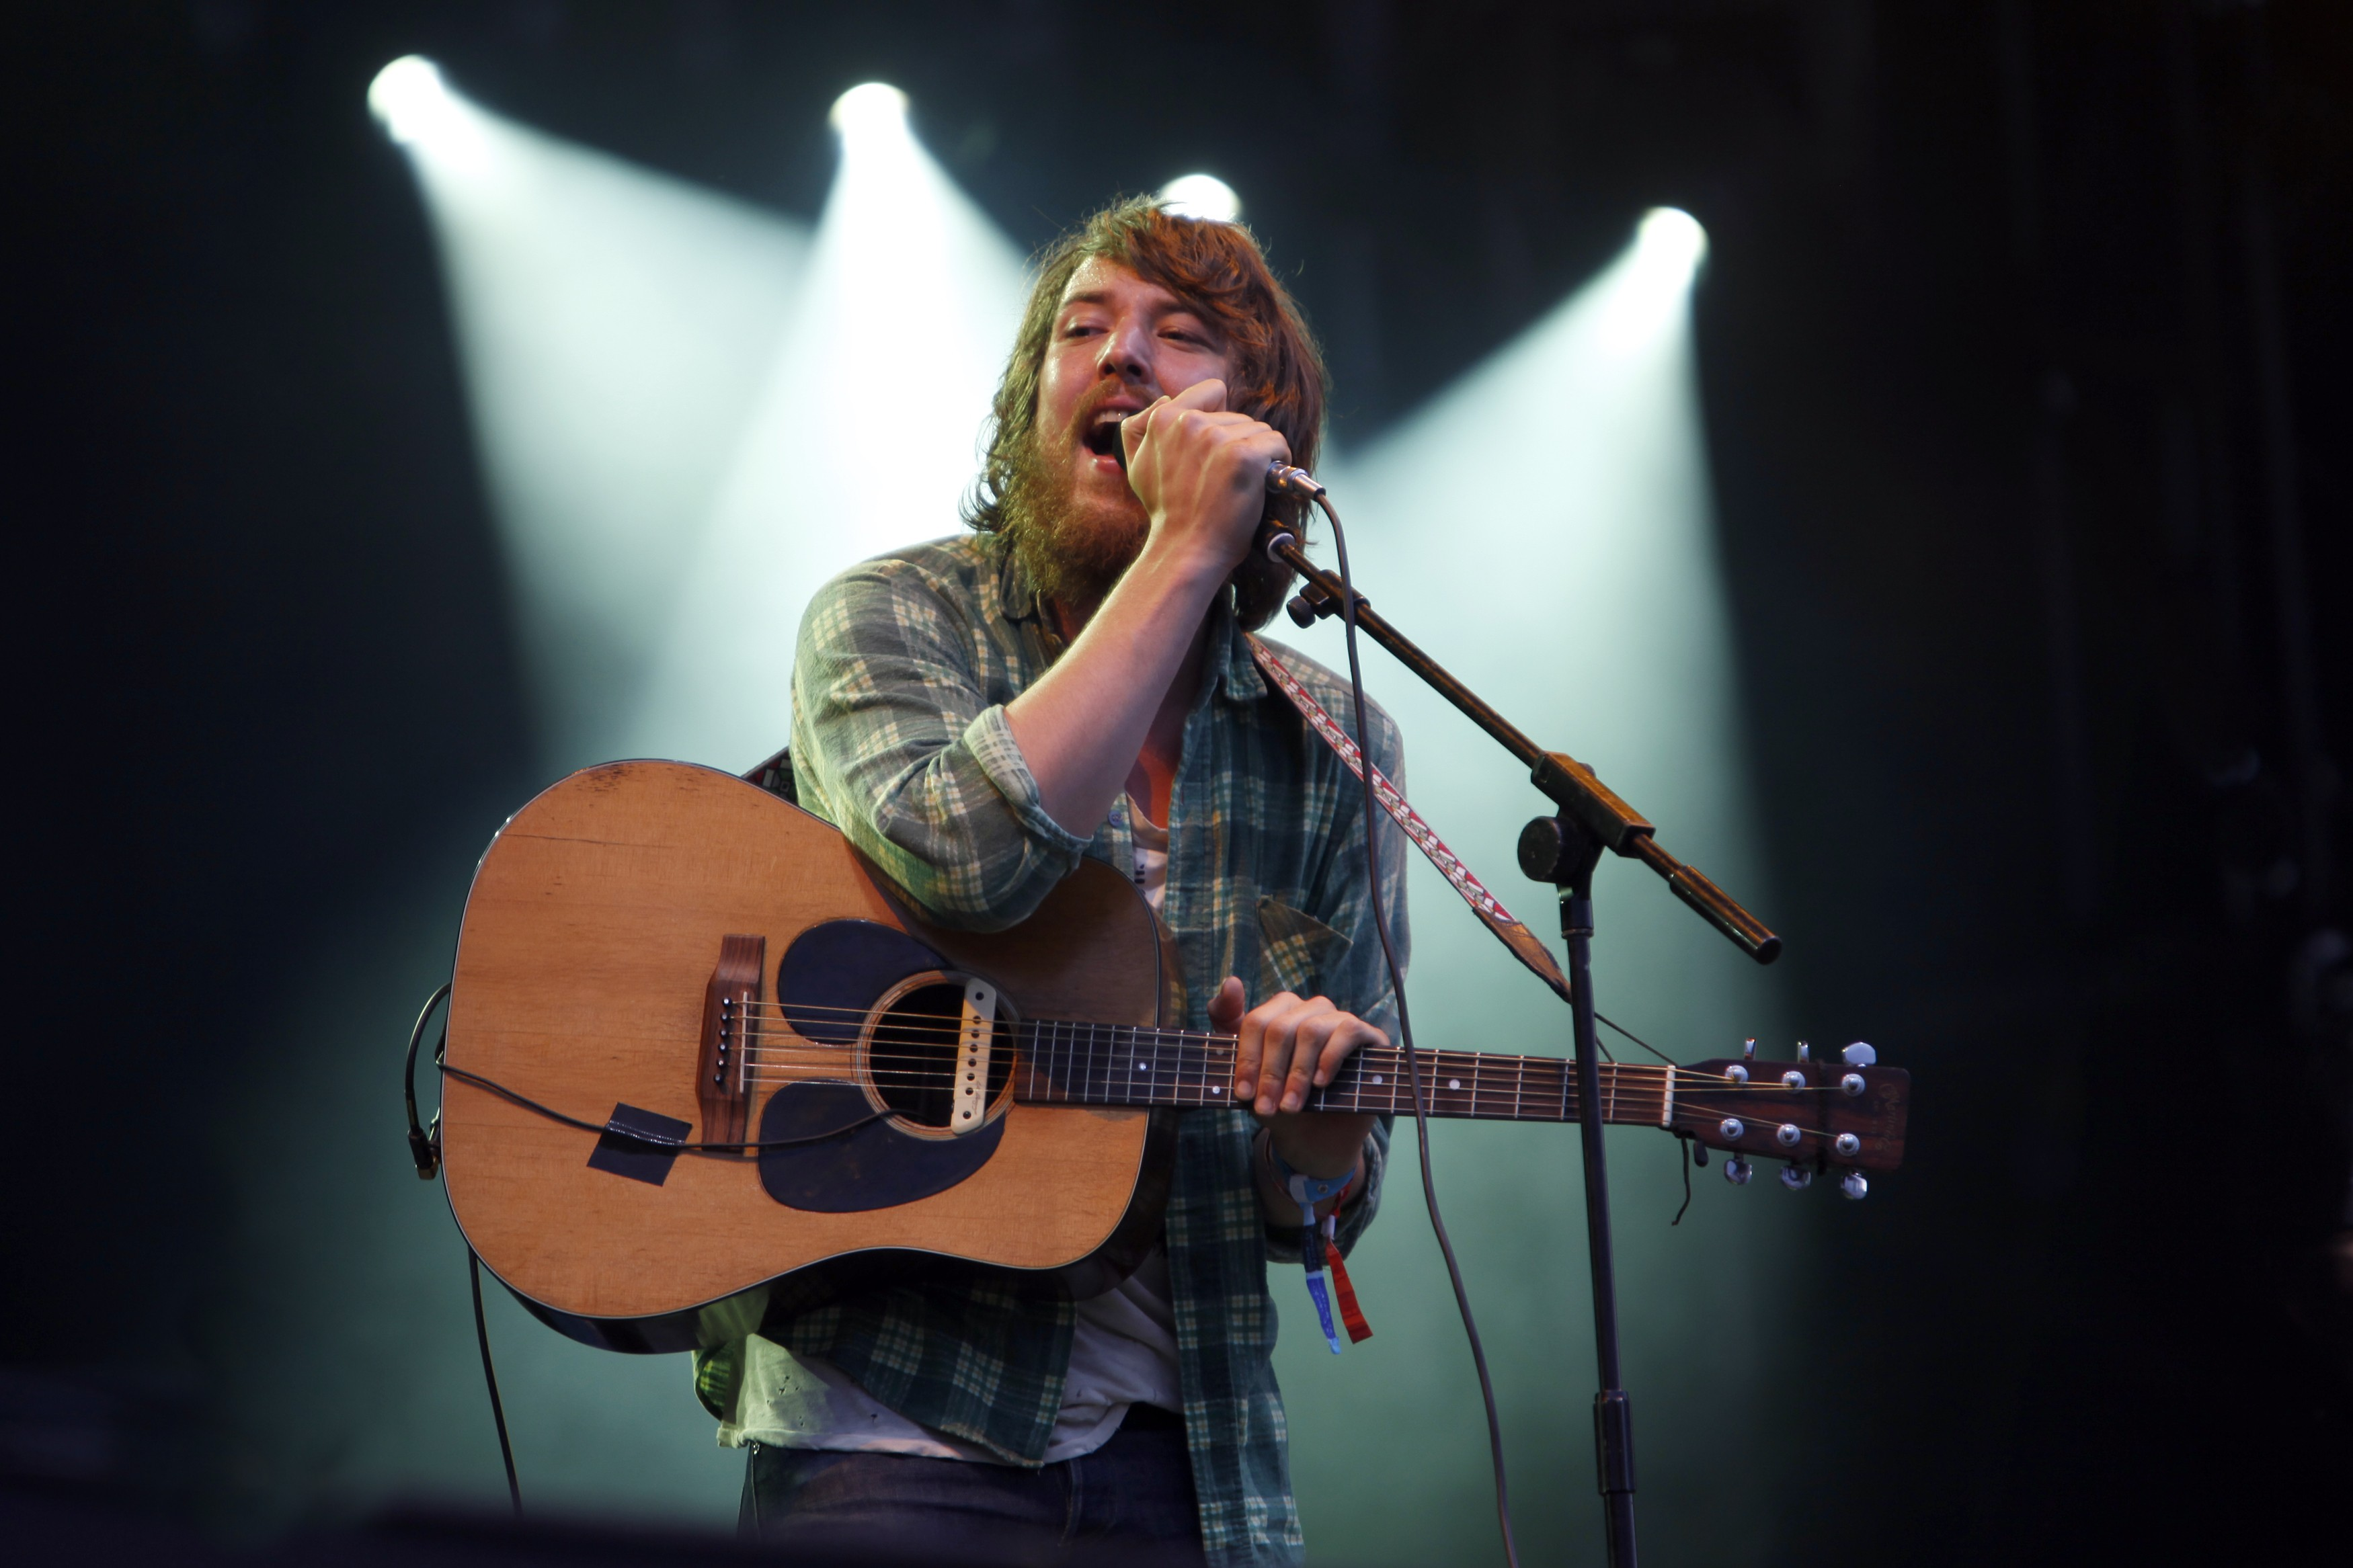 fleet-foxes-robin-pecknold-speaks-out-about-coping-with-suicidal-thoughts